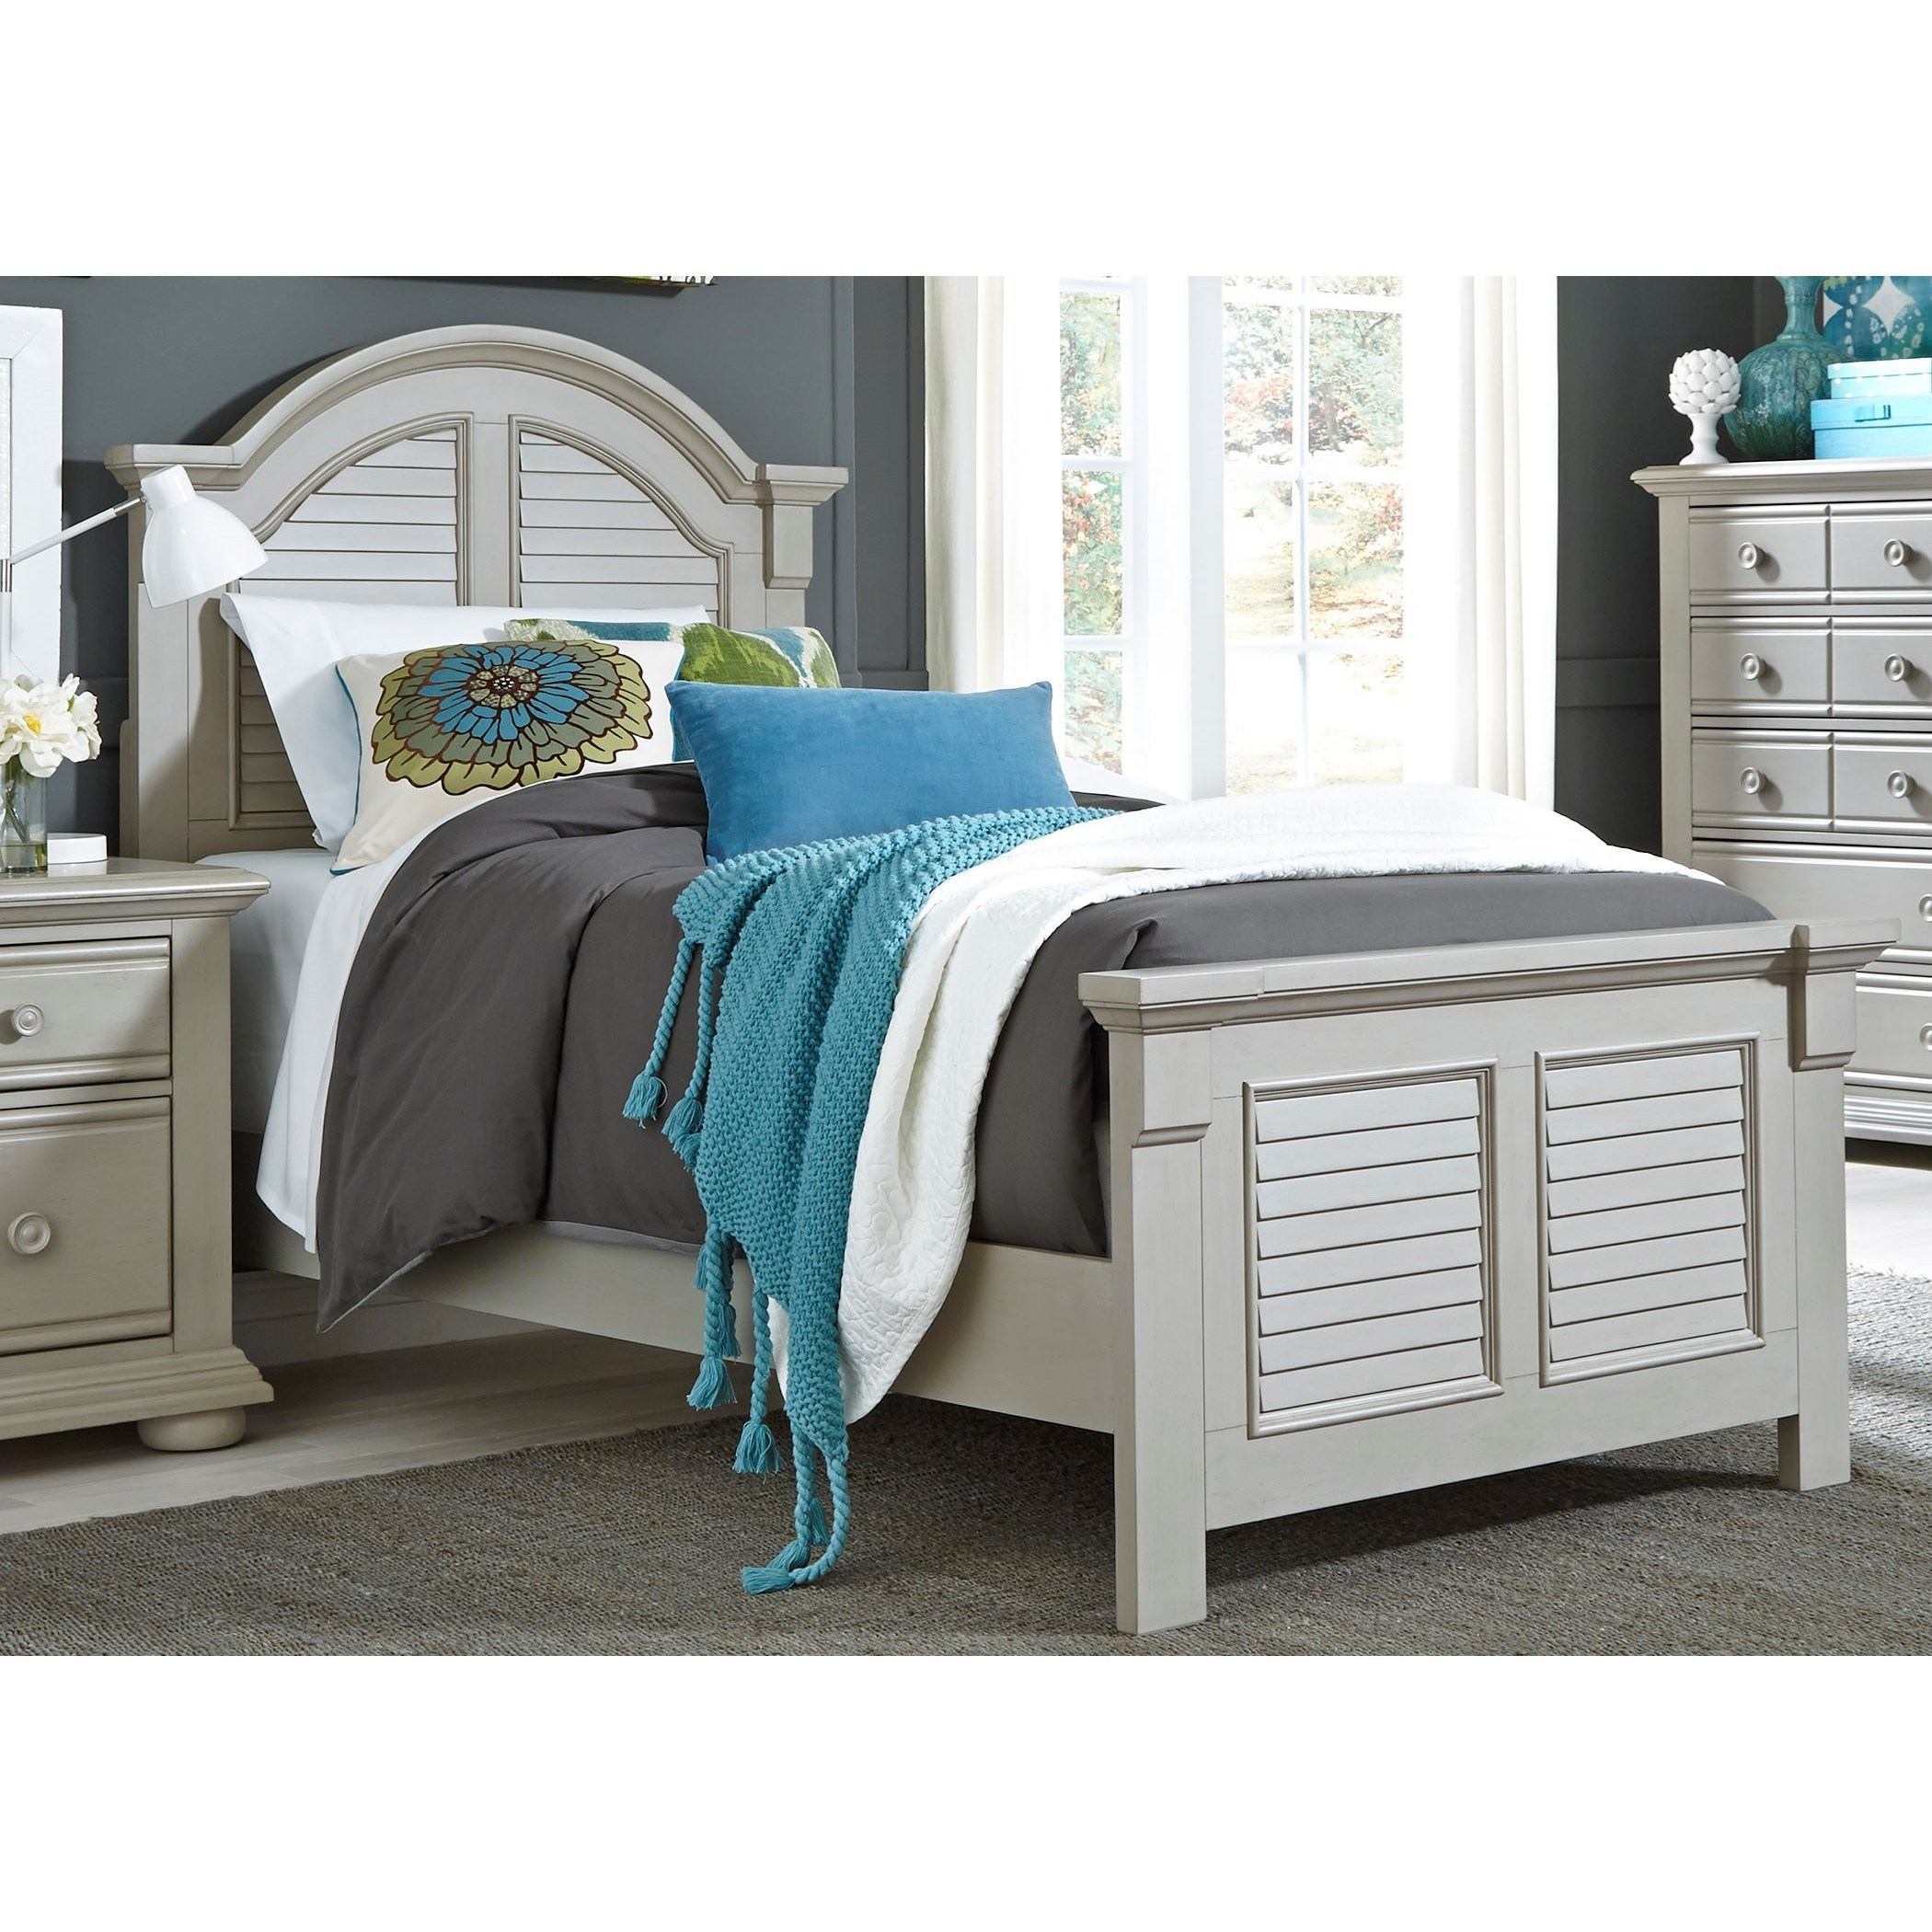 Liberty Furniture Sumer House Youth Full Panel Bed Dream Home Furniture Panel Beds Roswell